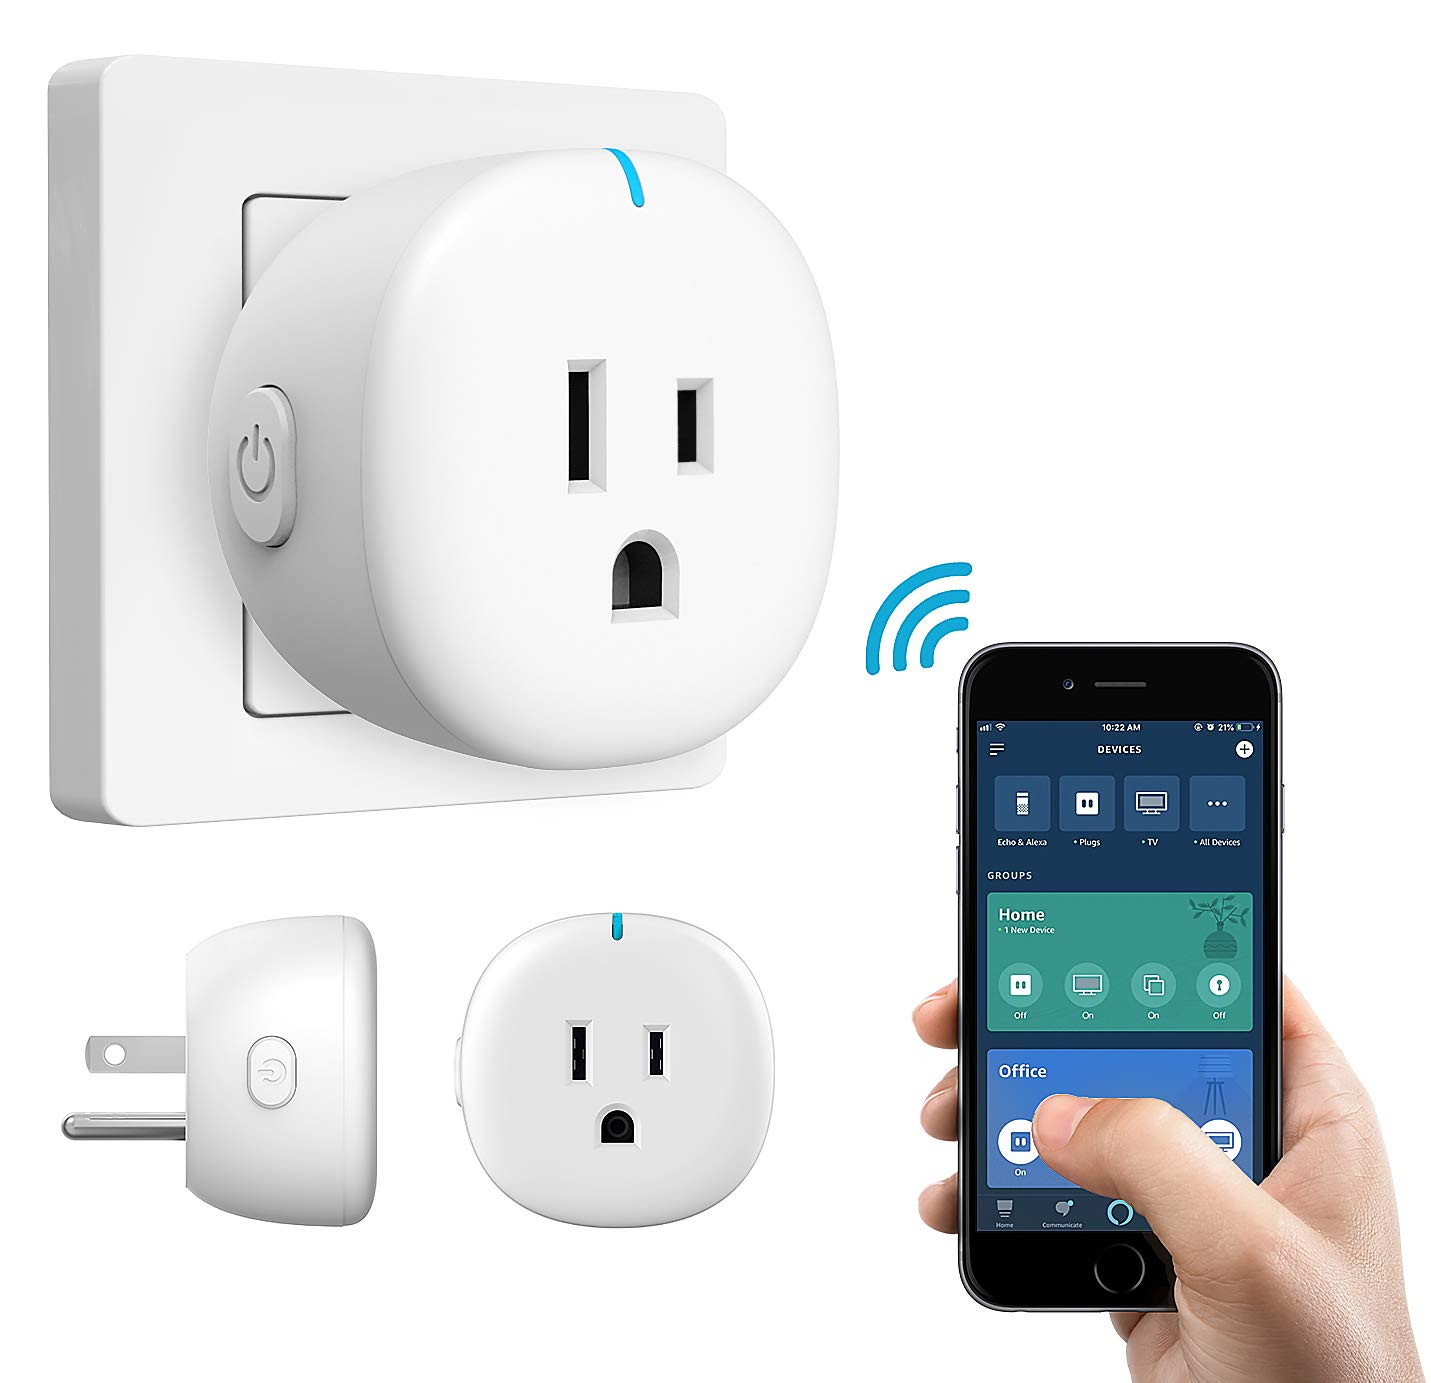 XFOX Smart Plug Wi-Fi 2 In 1 Sockets No Hub Required Compatible with Alexa Echo Works with Google Home IFTTT